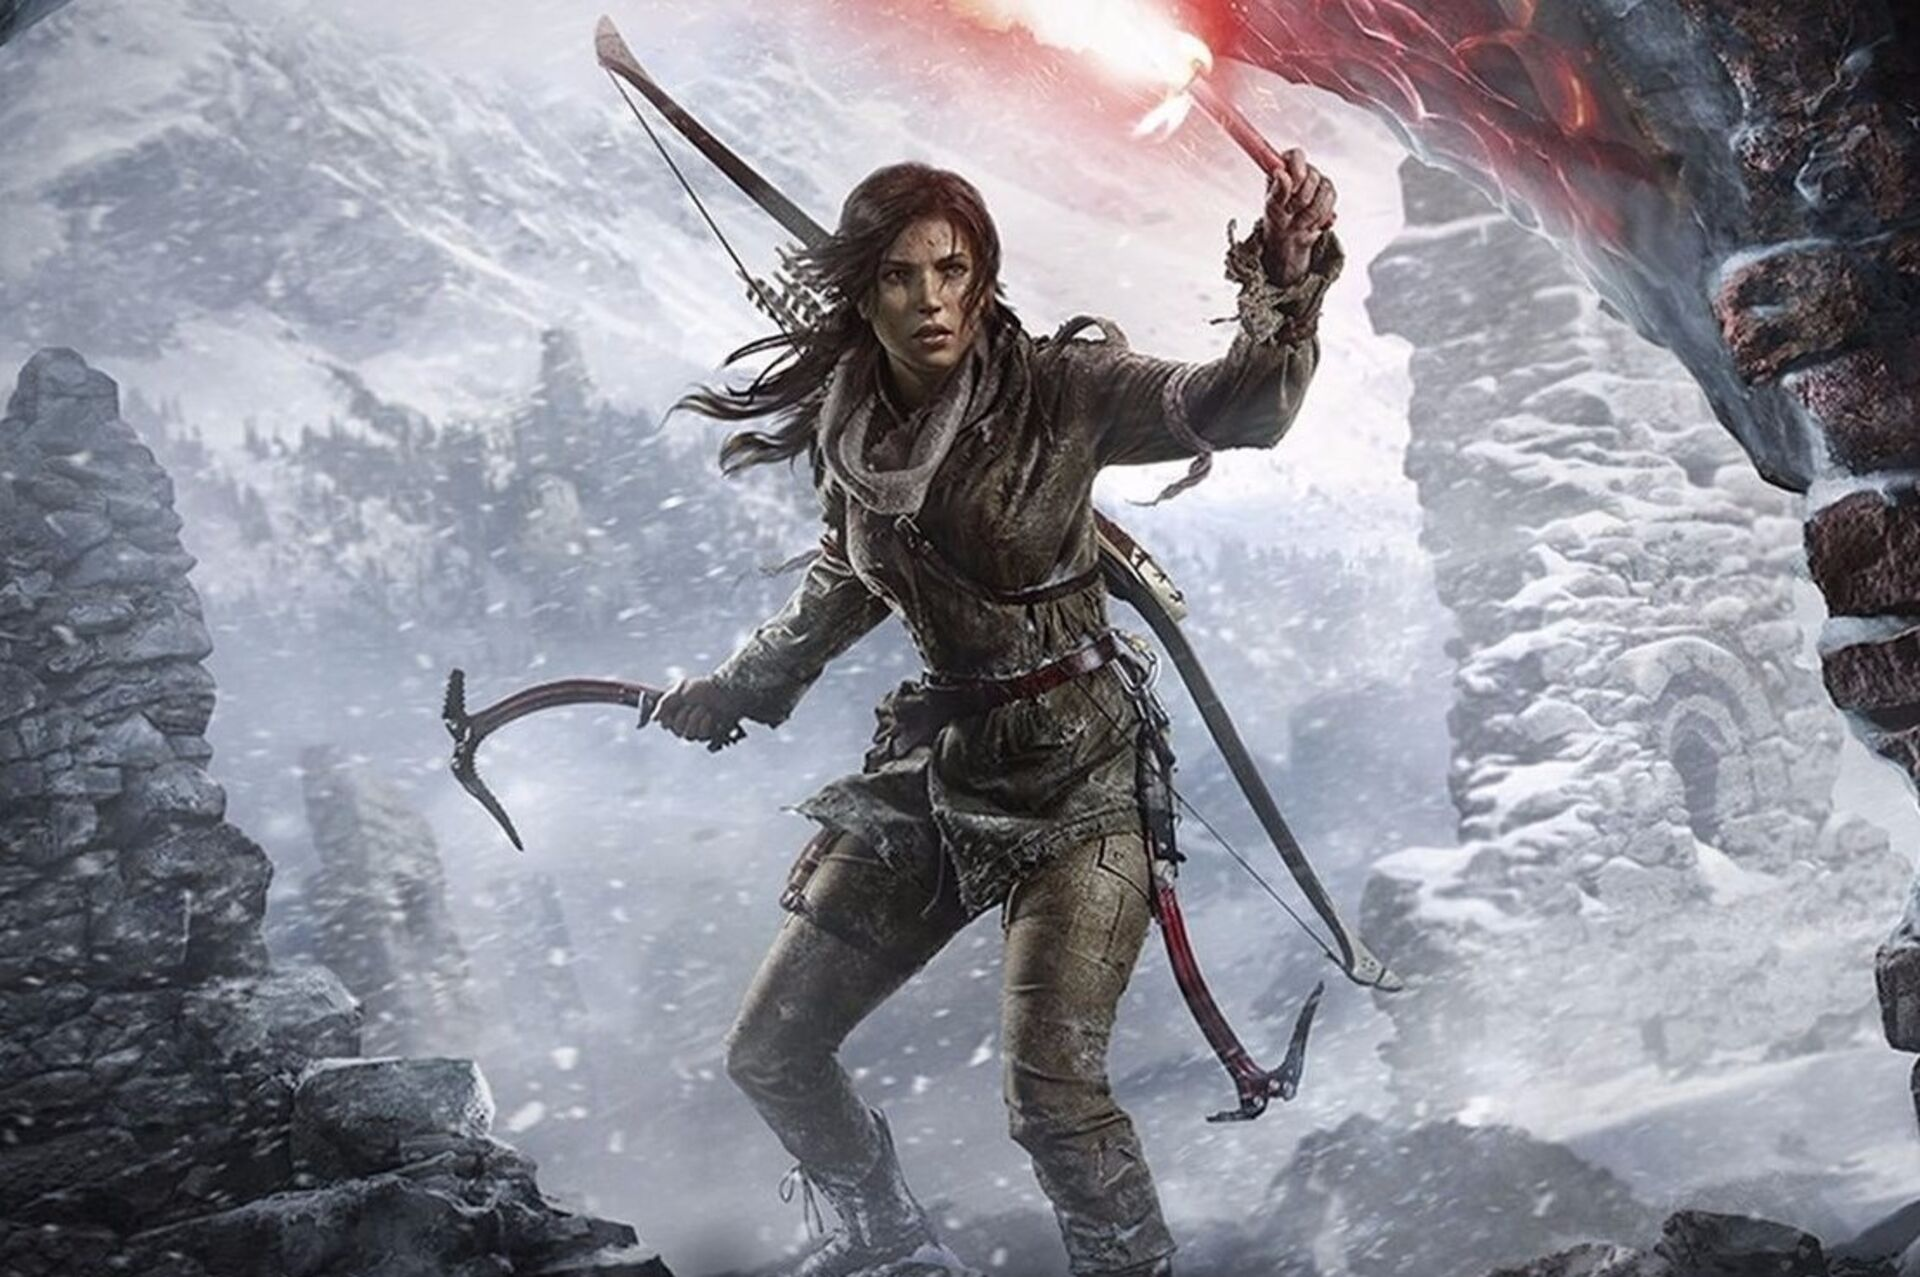 Digital Foundry: Hands on with PS4 Rise of the Tomb Raider